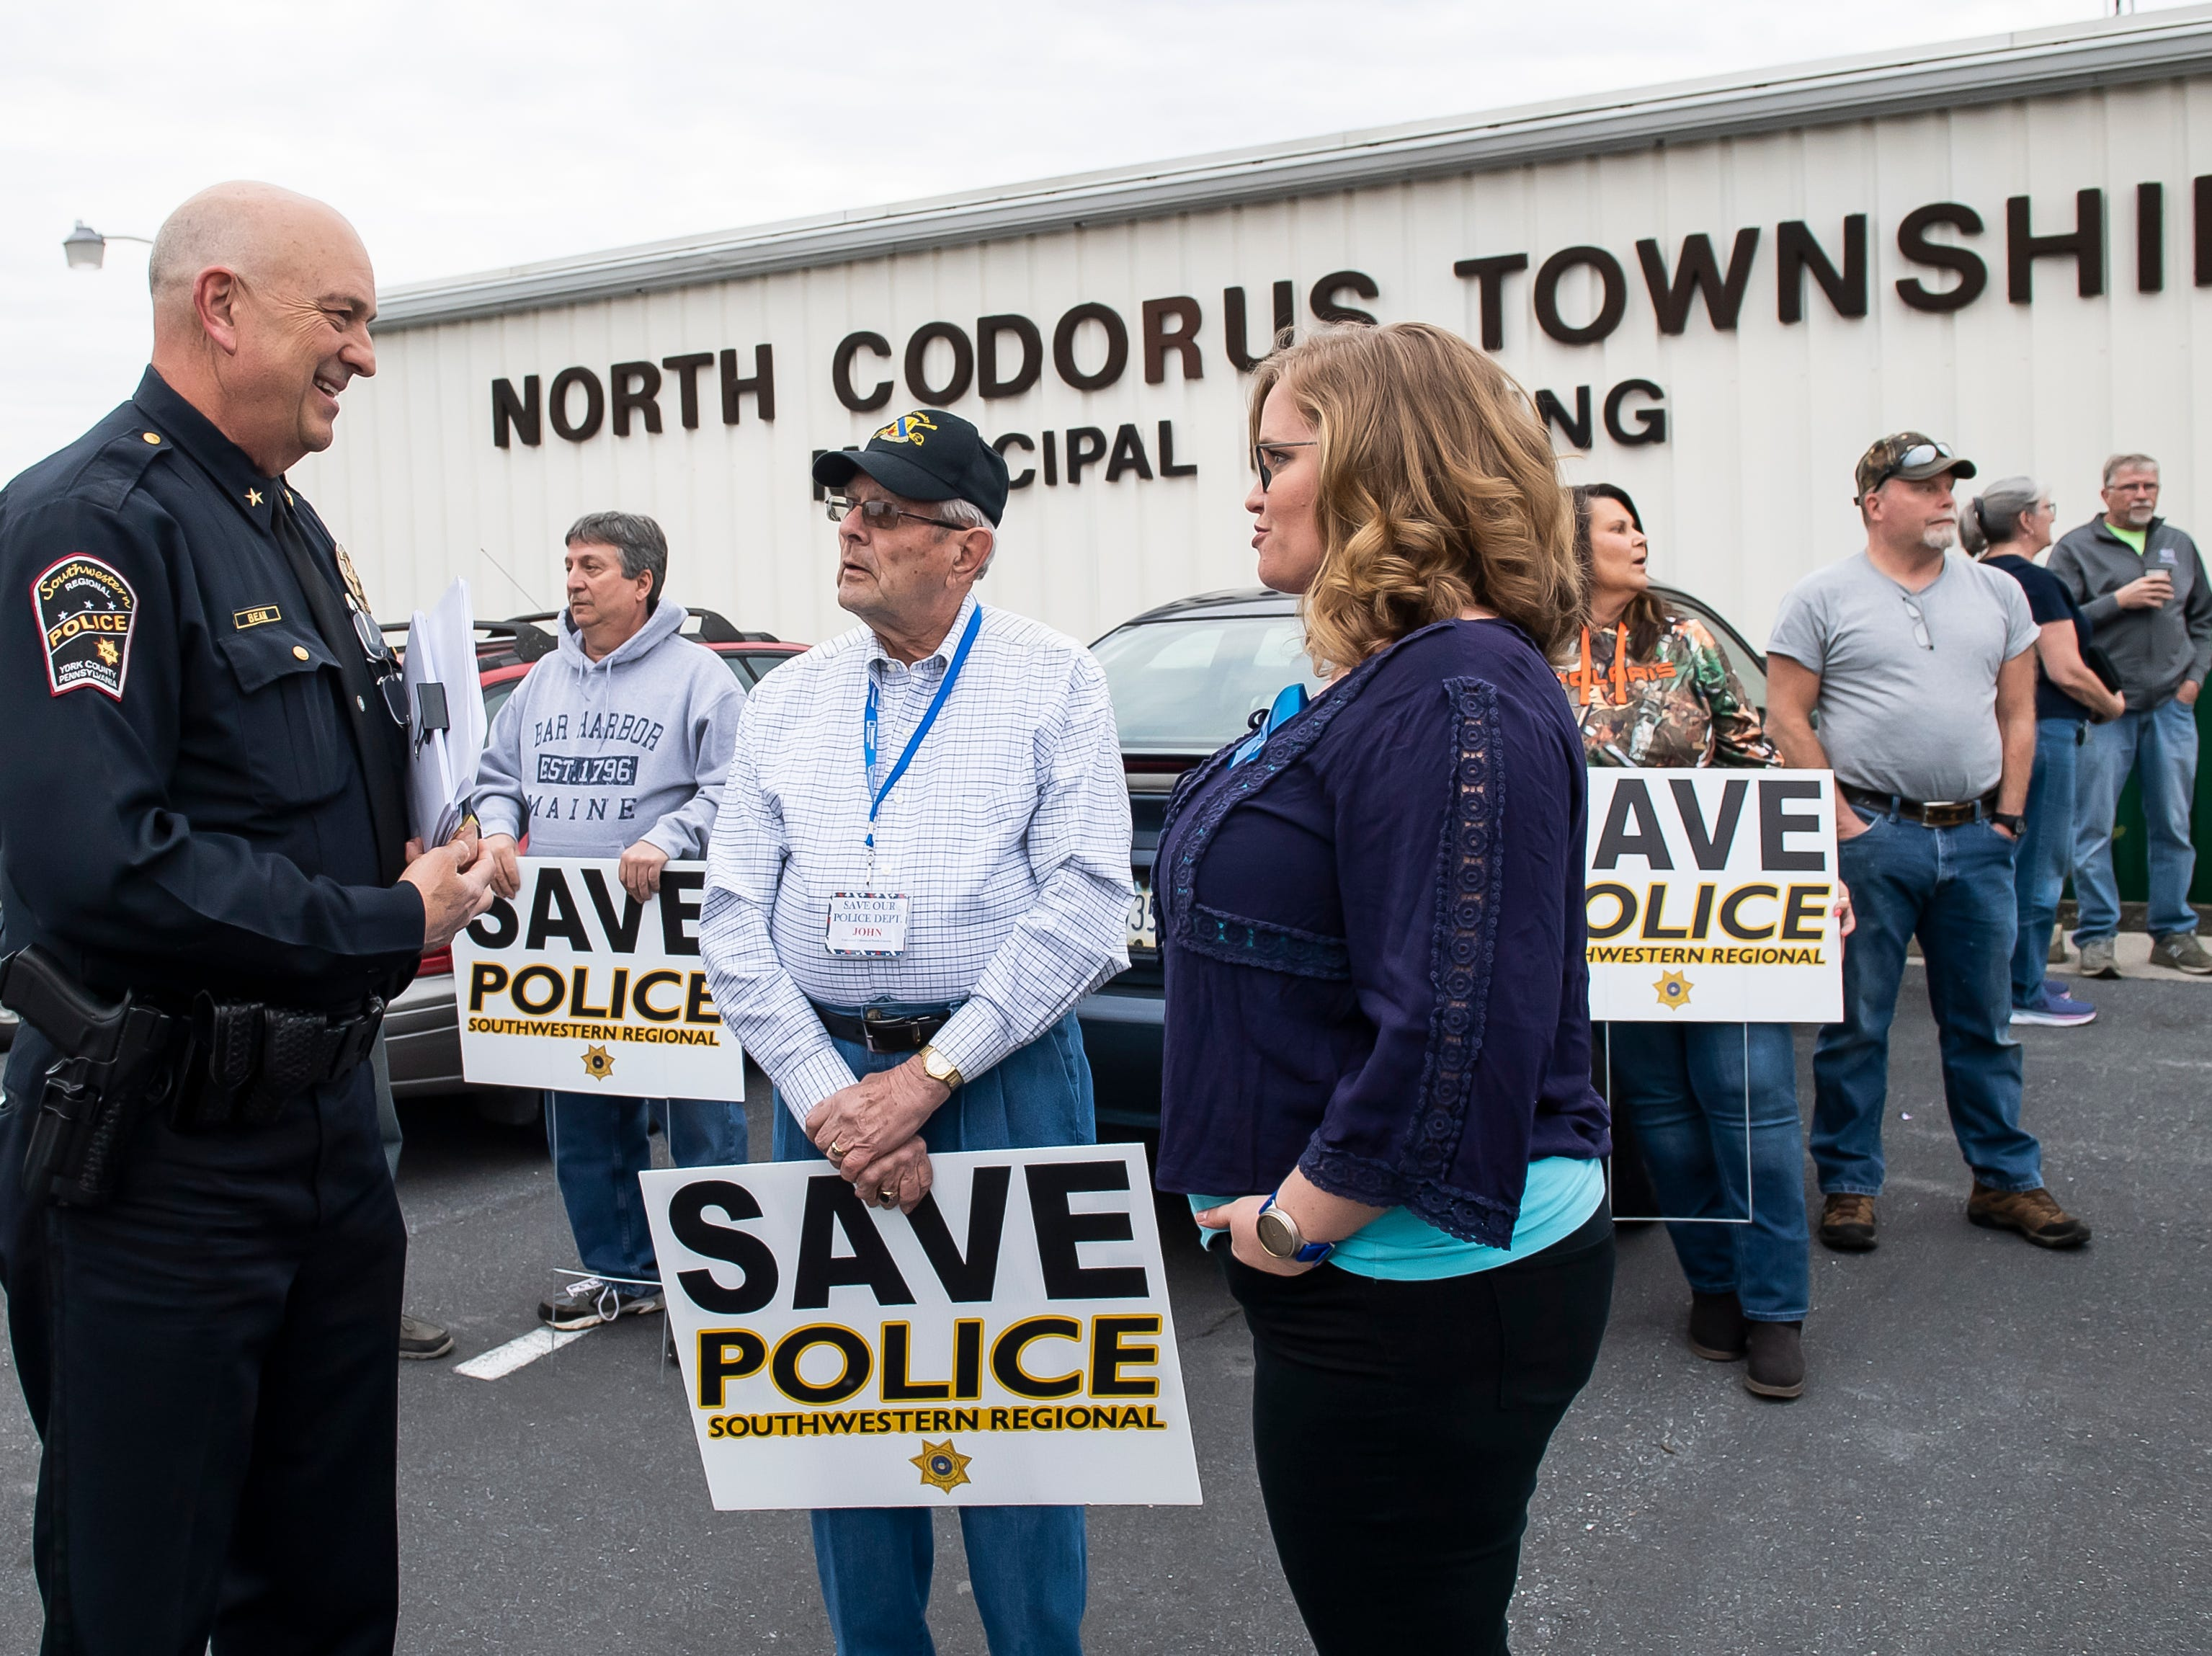 Southwestern Regional Police Chief Gregory Bean talks with John Rebert and Emily Levault before the start of a North Codorus Township meeting on Tuesday, April 16, 2019. The township continues to consider a plan to switch police providers at the end of 2019.